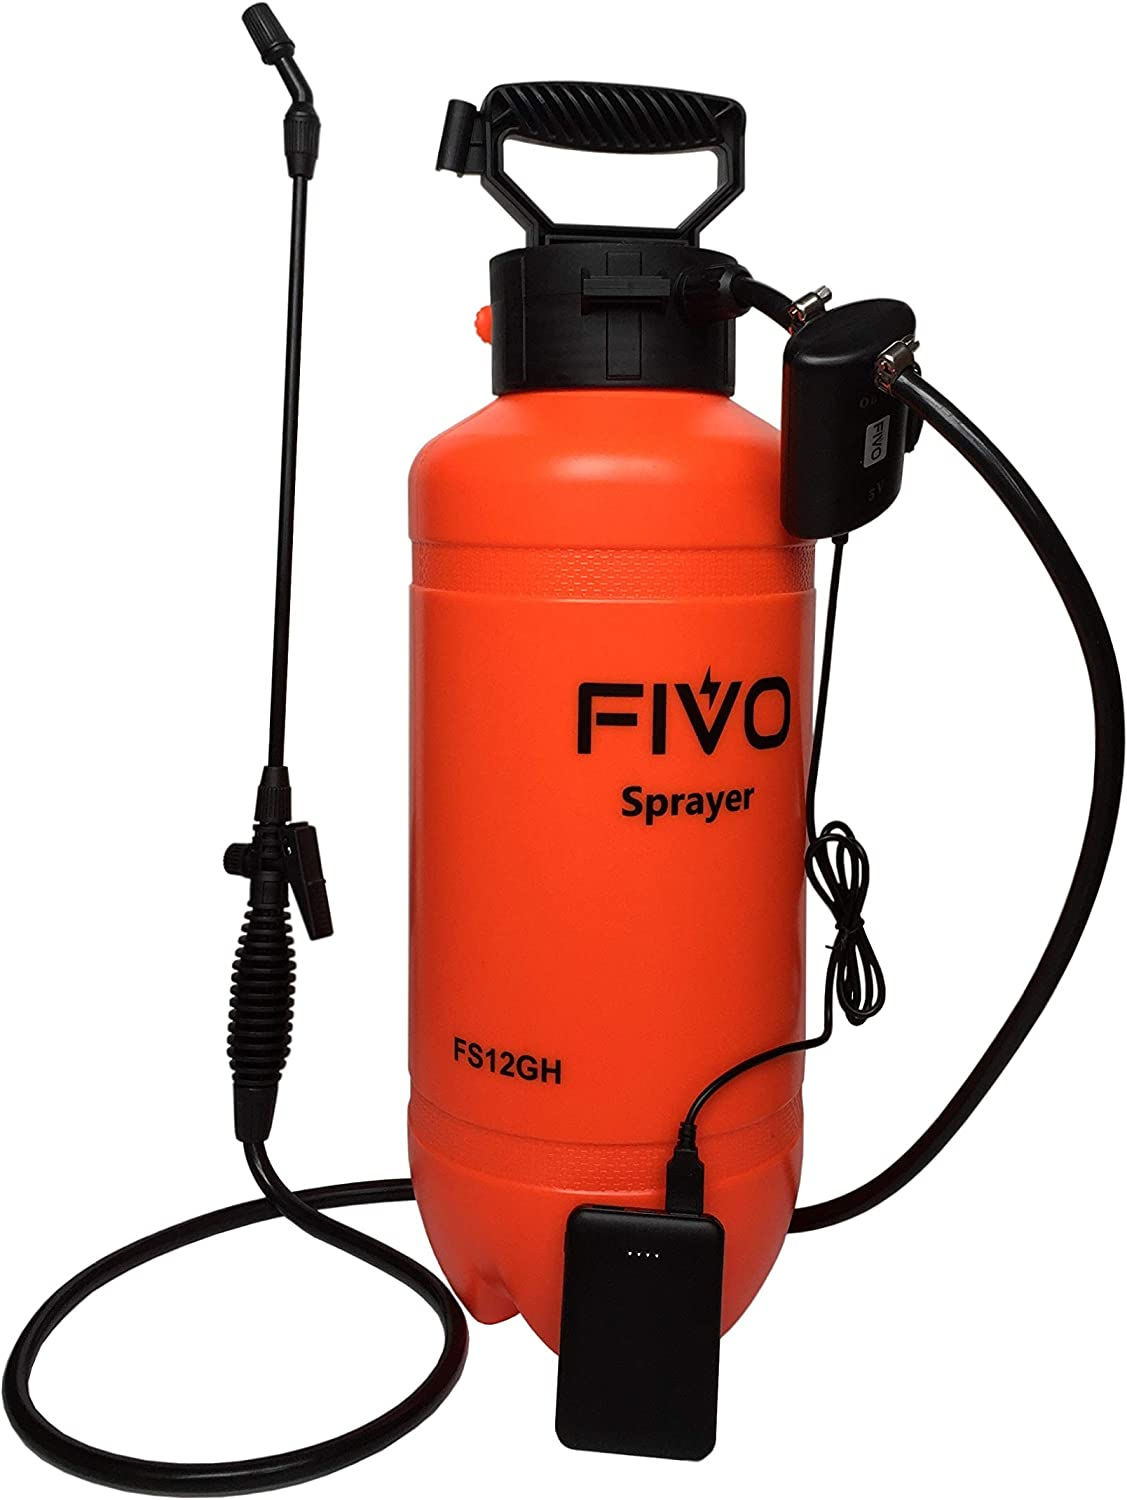 FIVO 2 Gallon Battery Powered Sprayer for Lawn and Garden, Powered Sprayer and Pressure Sprayer Dual Functions with Rechargeable 5V 2A Lithium Ion Power Bank and Shoulder Strap